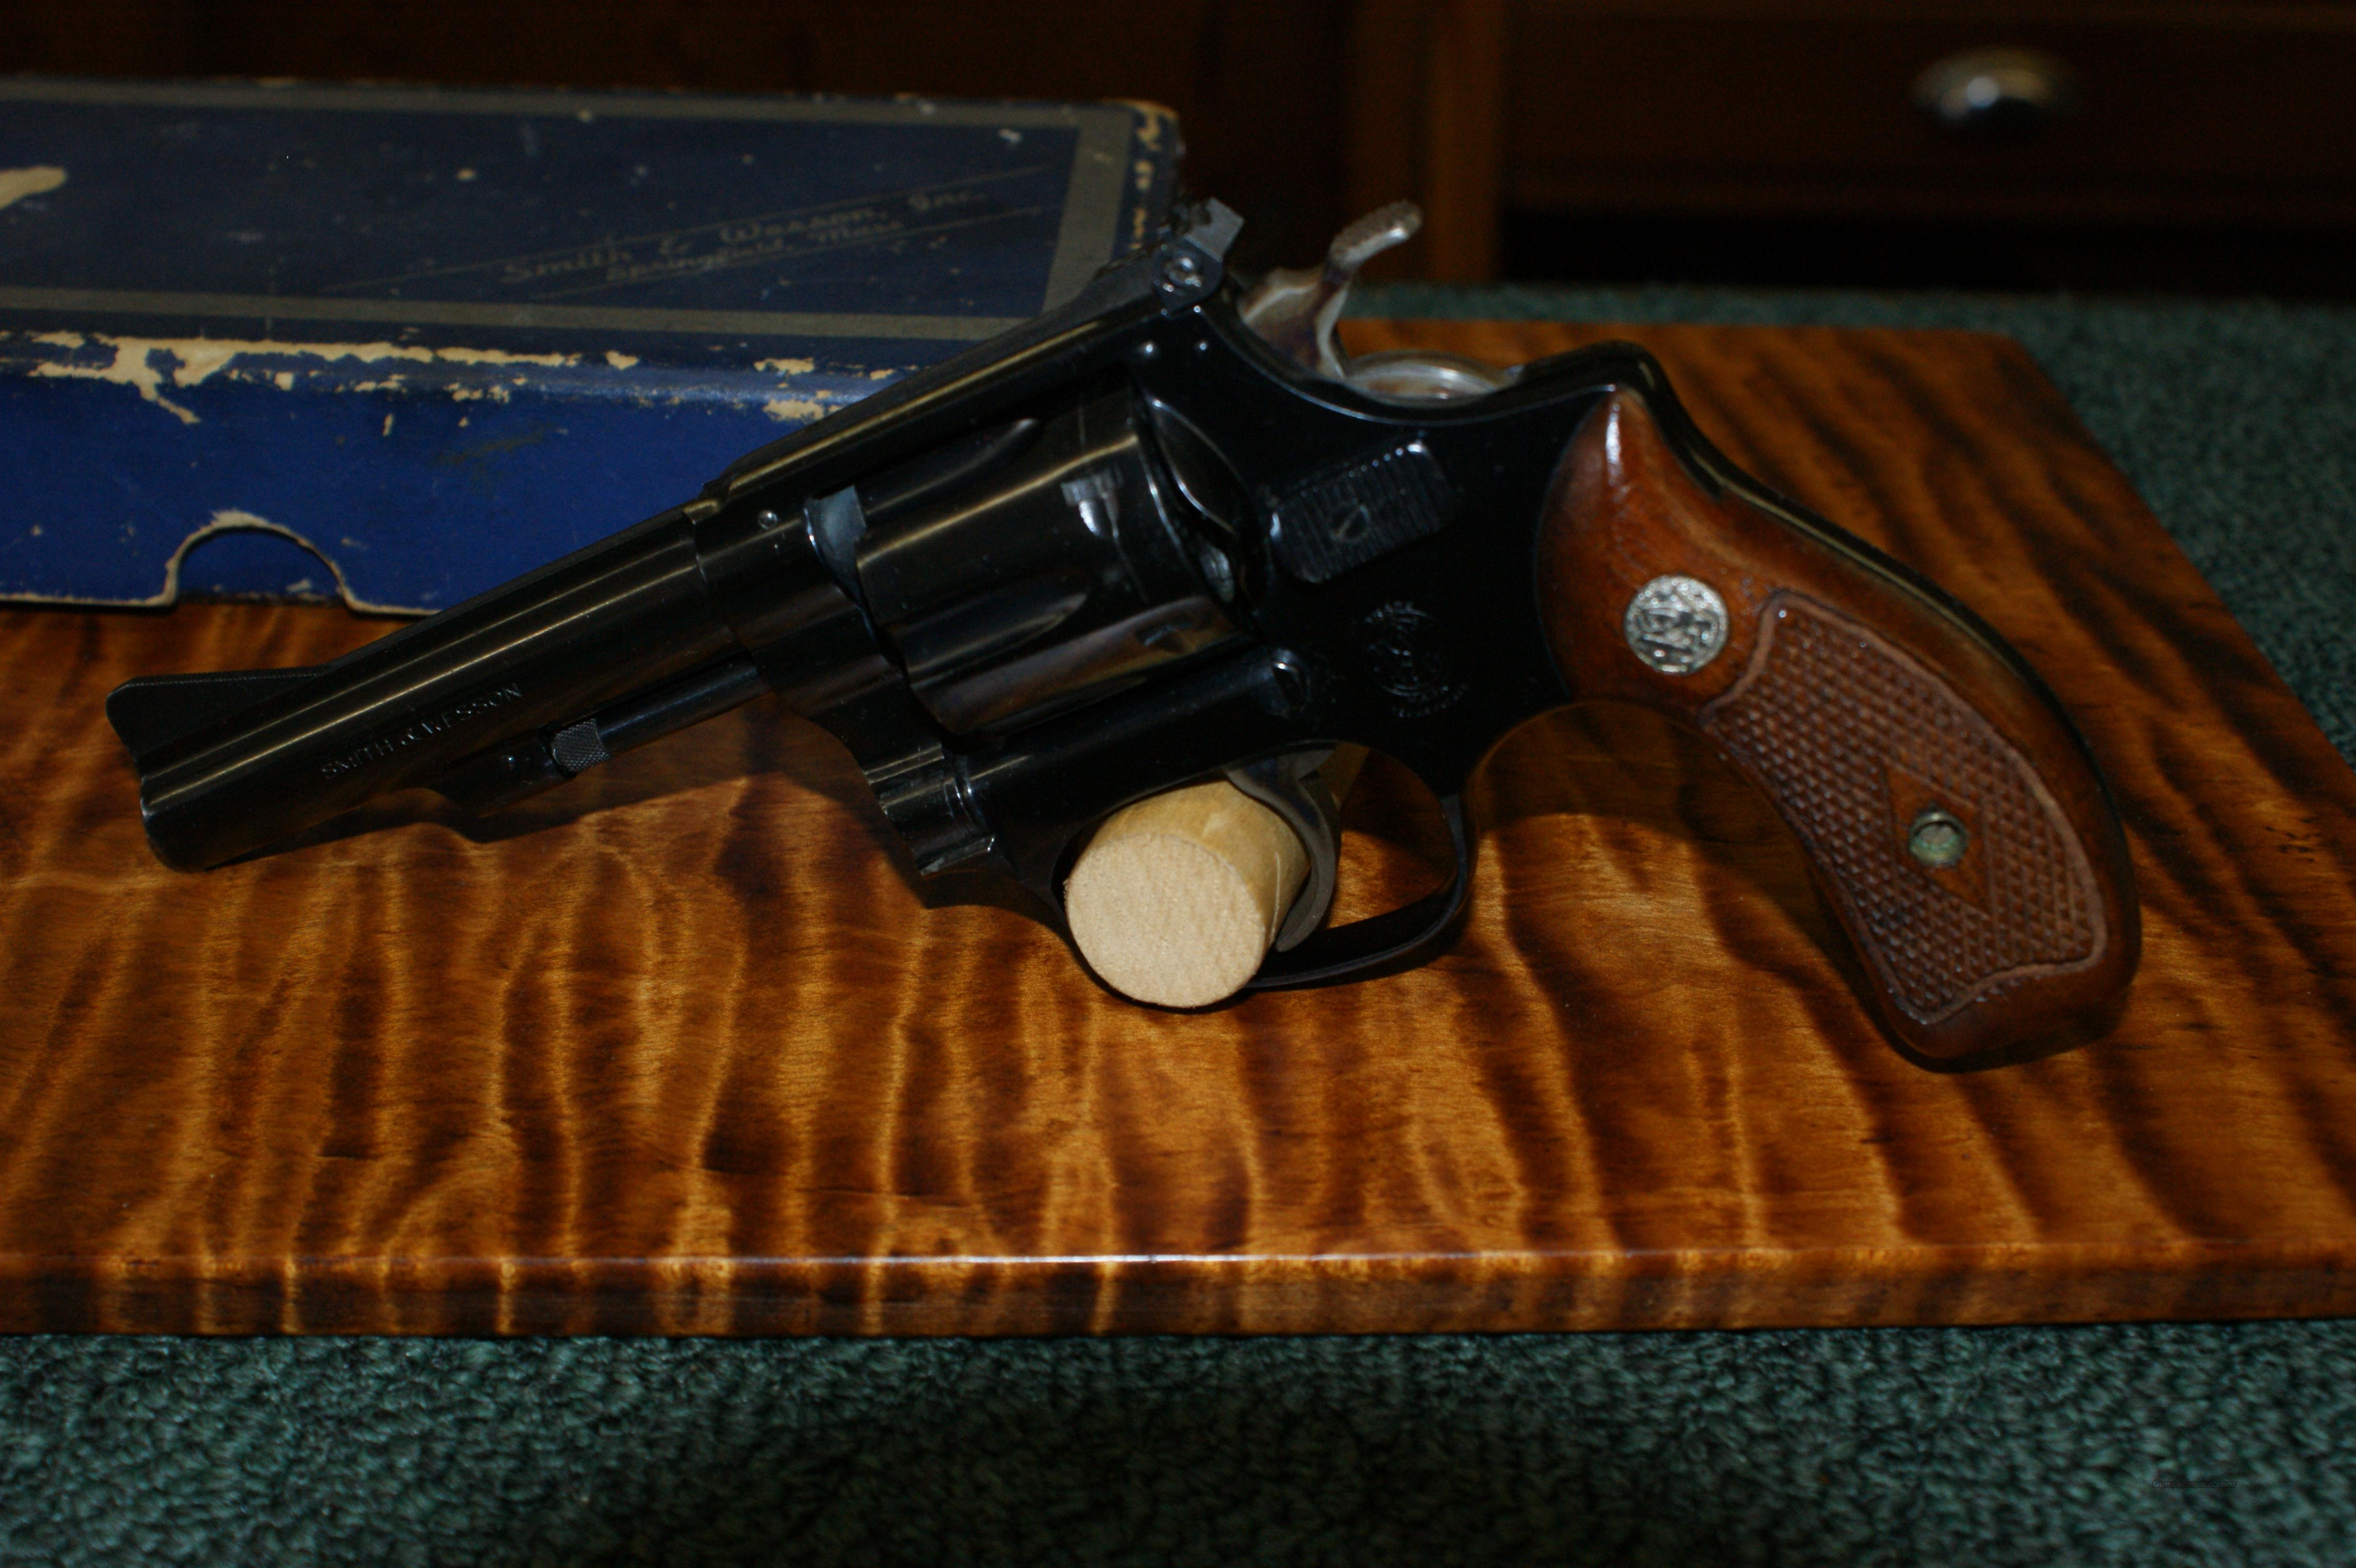 Smith & Wesson Kit Gun model 34   .22lr  Guns > Pistols > Smith & Wesson Revolvers > Full Frame Revolver